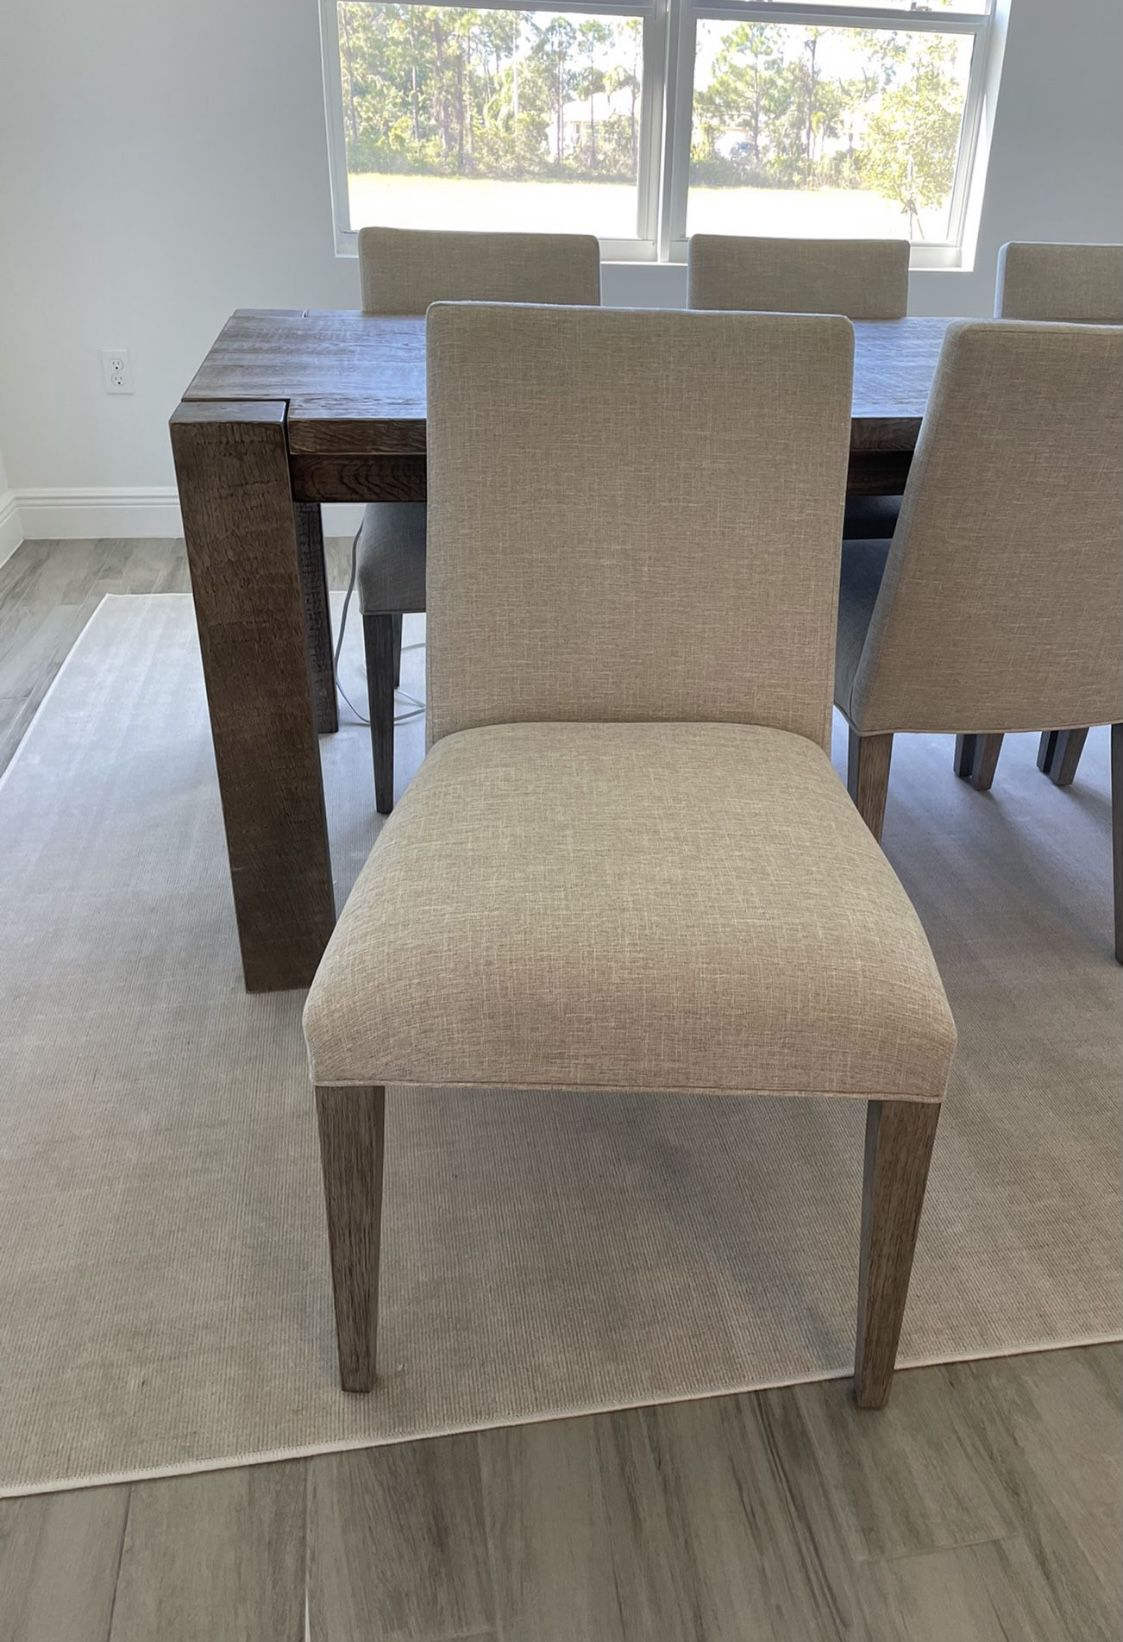 2 Modern Dining Chairs